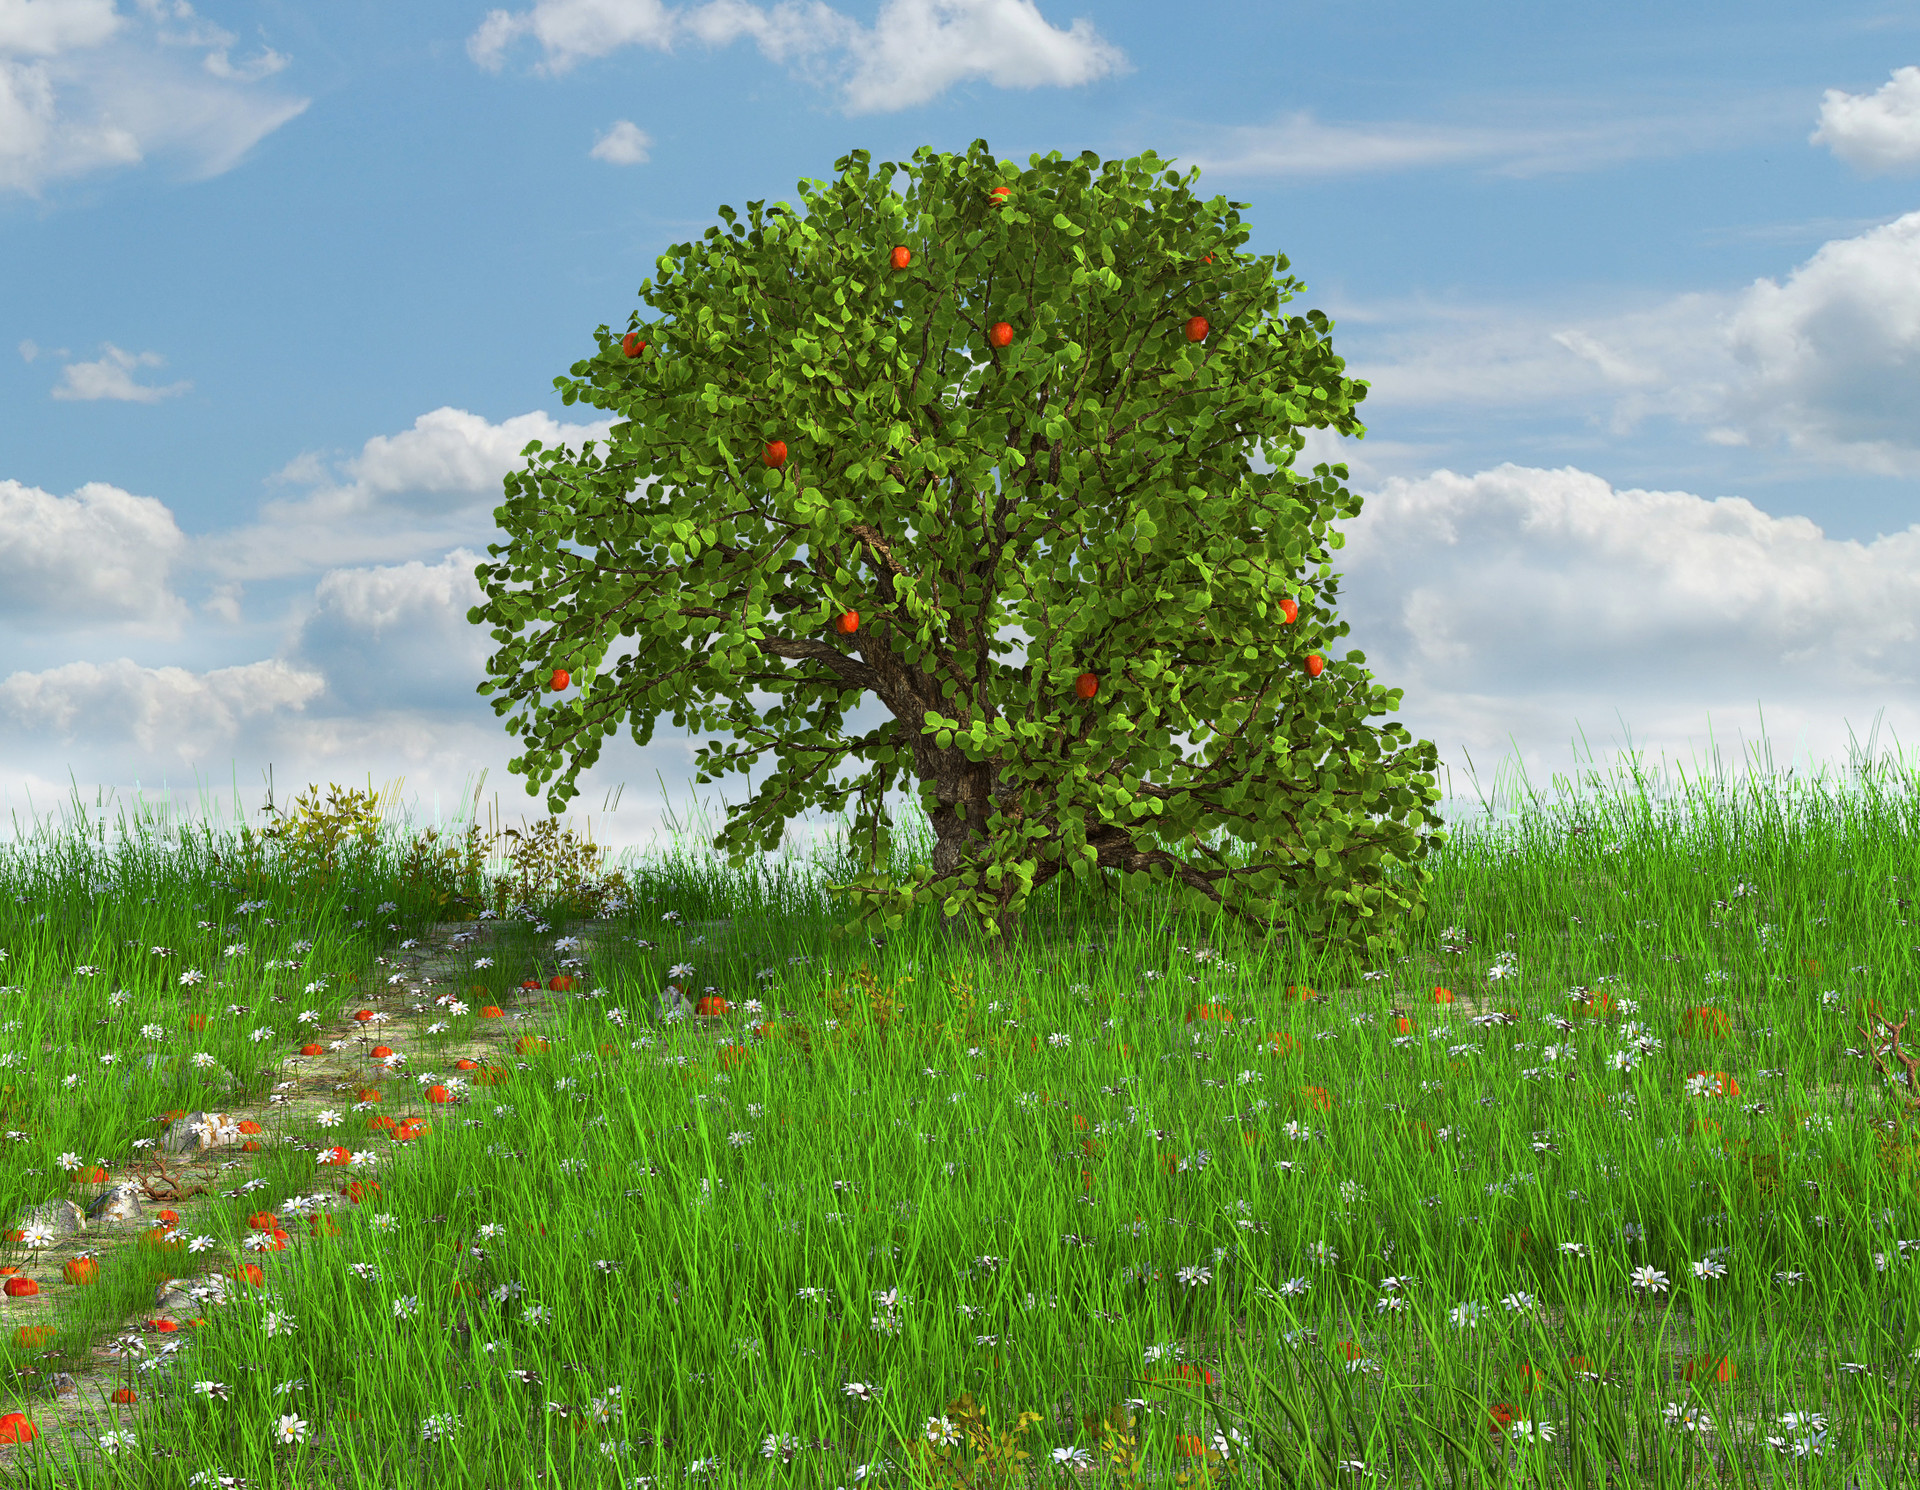 Marc mons meadow2